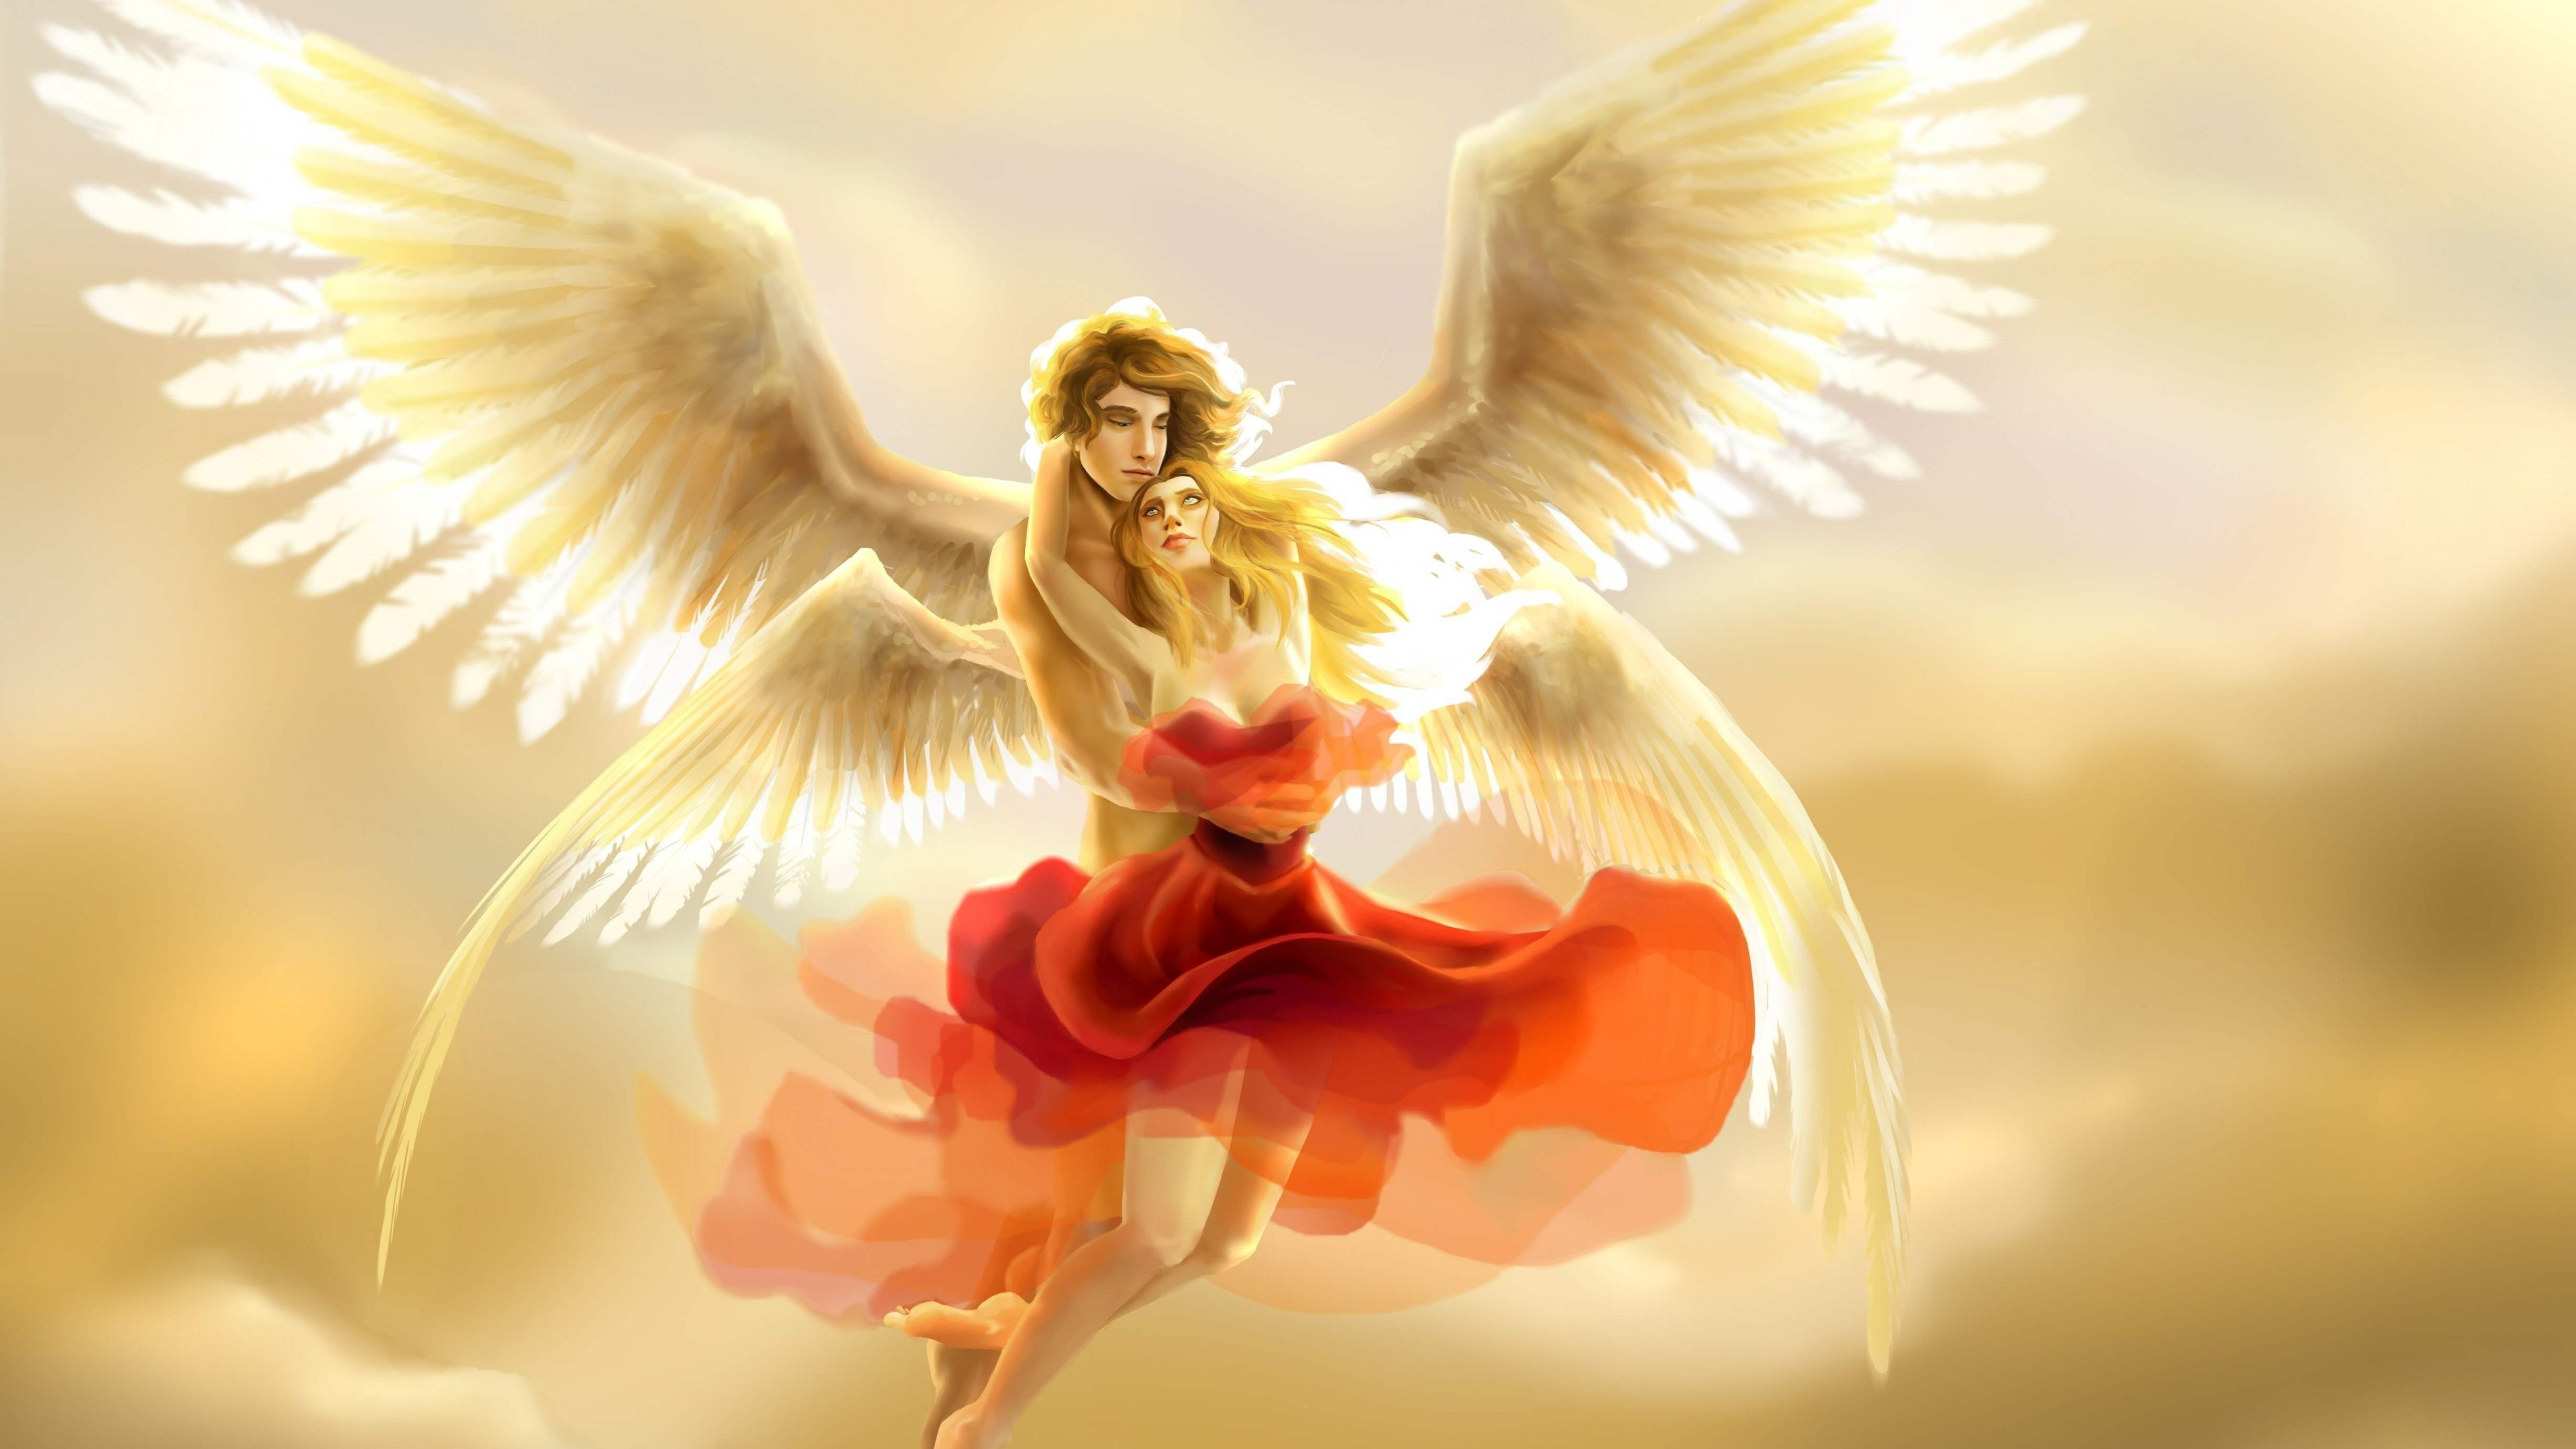 Stock Images Love Image Heart 5k Angel Stock Images 14860